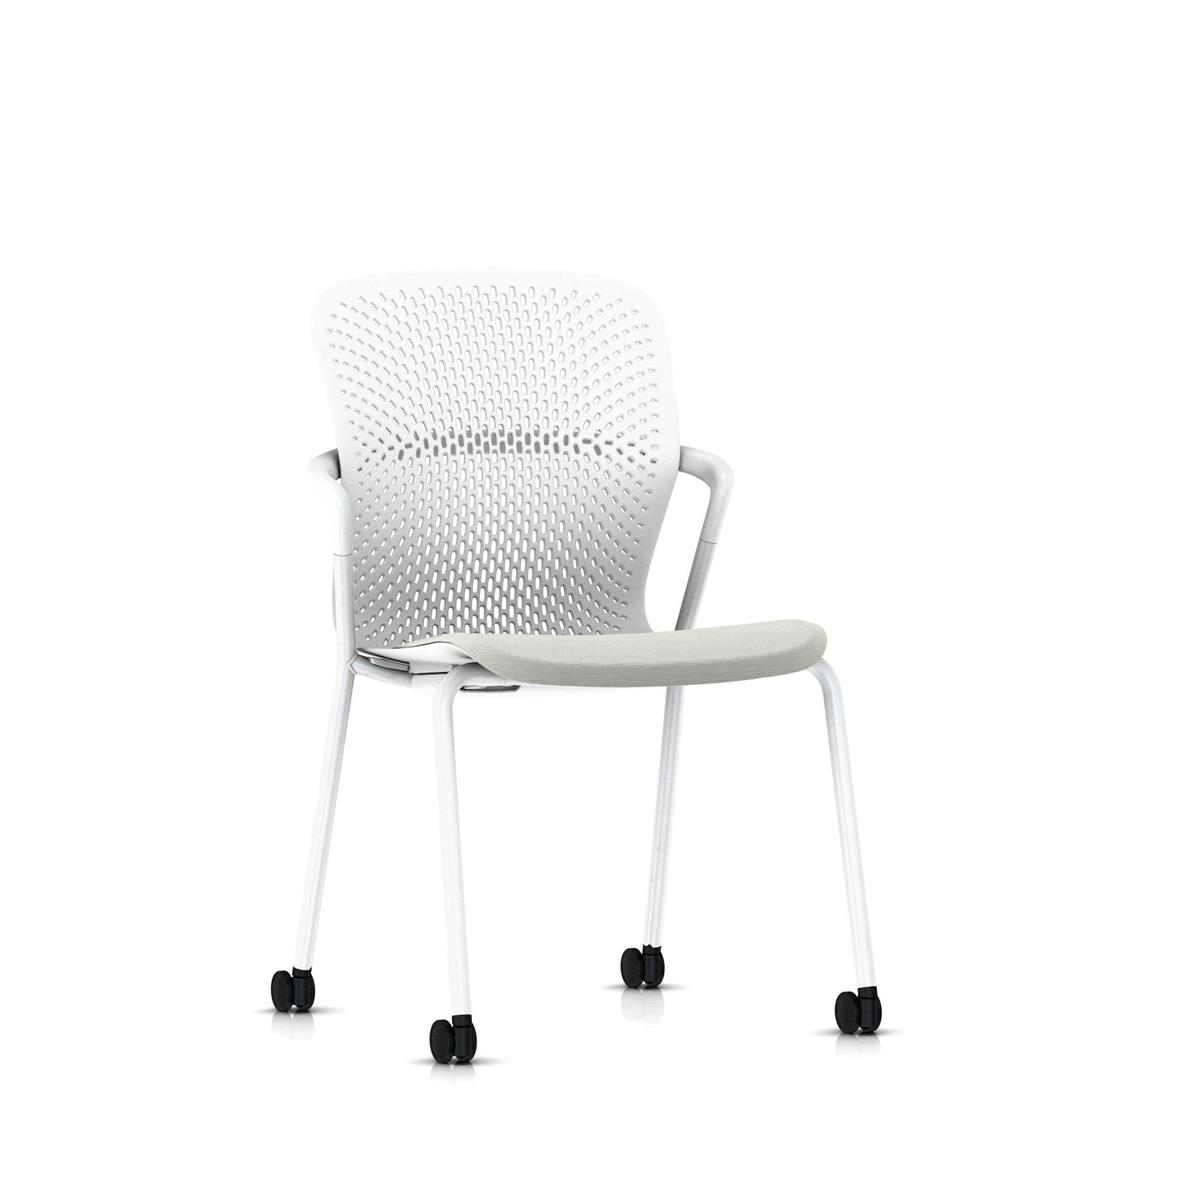 Keyn 4 Leg Chair - Studio White med Camira Sprint tekstil og trinser for alle underlag